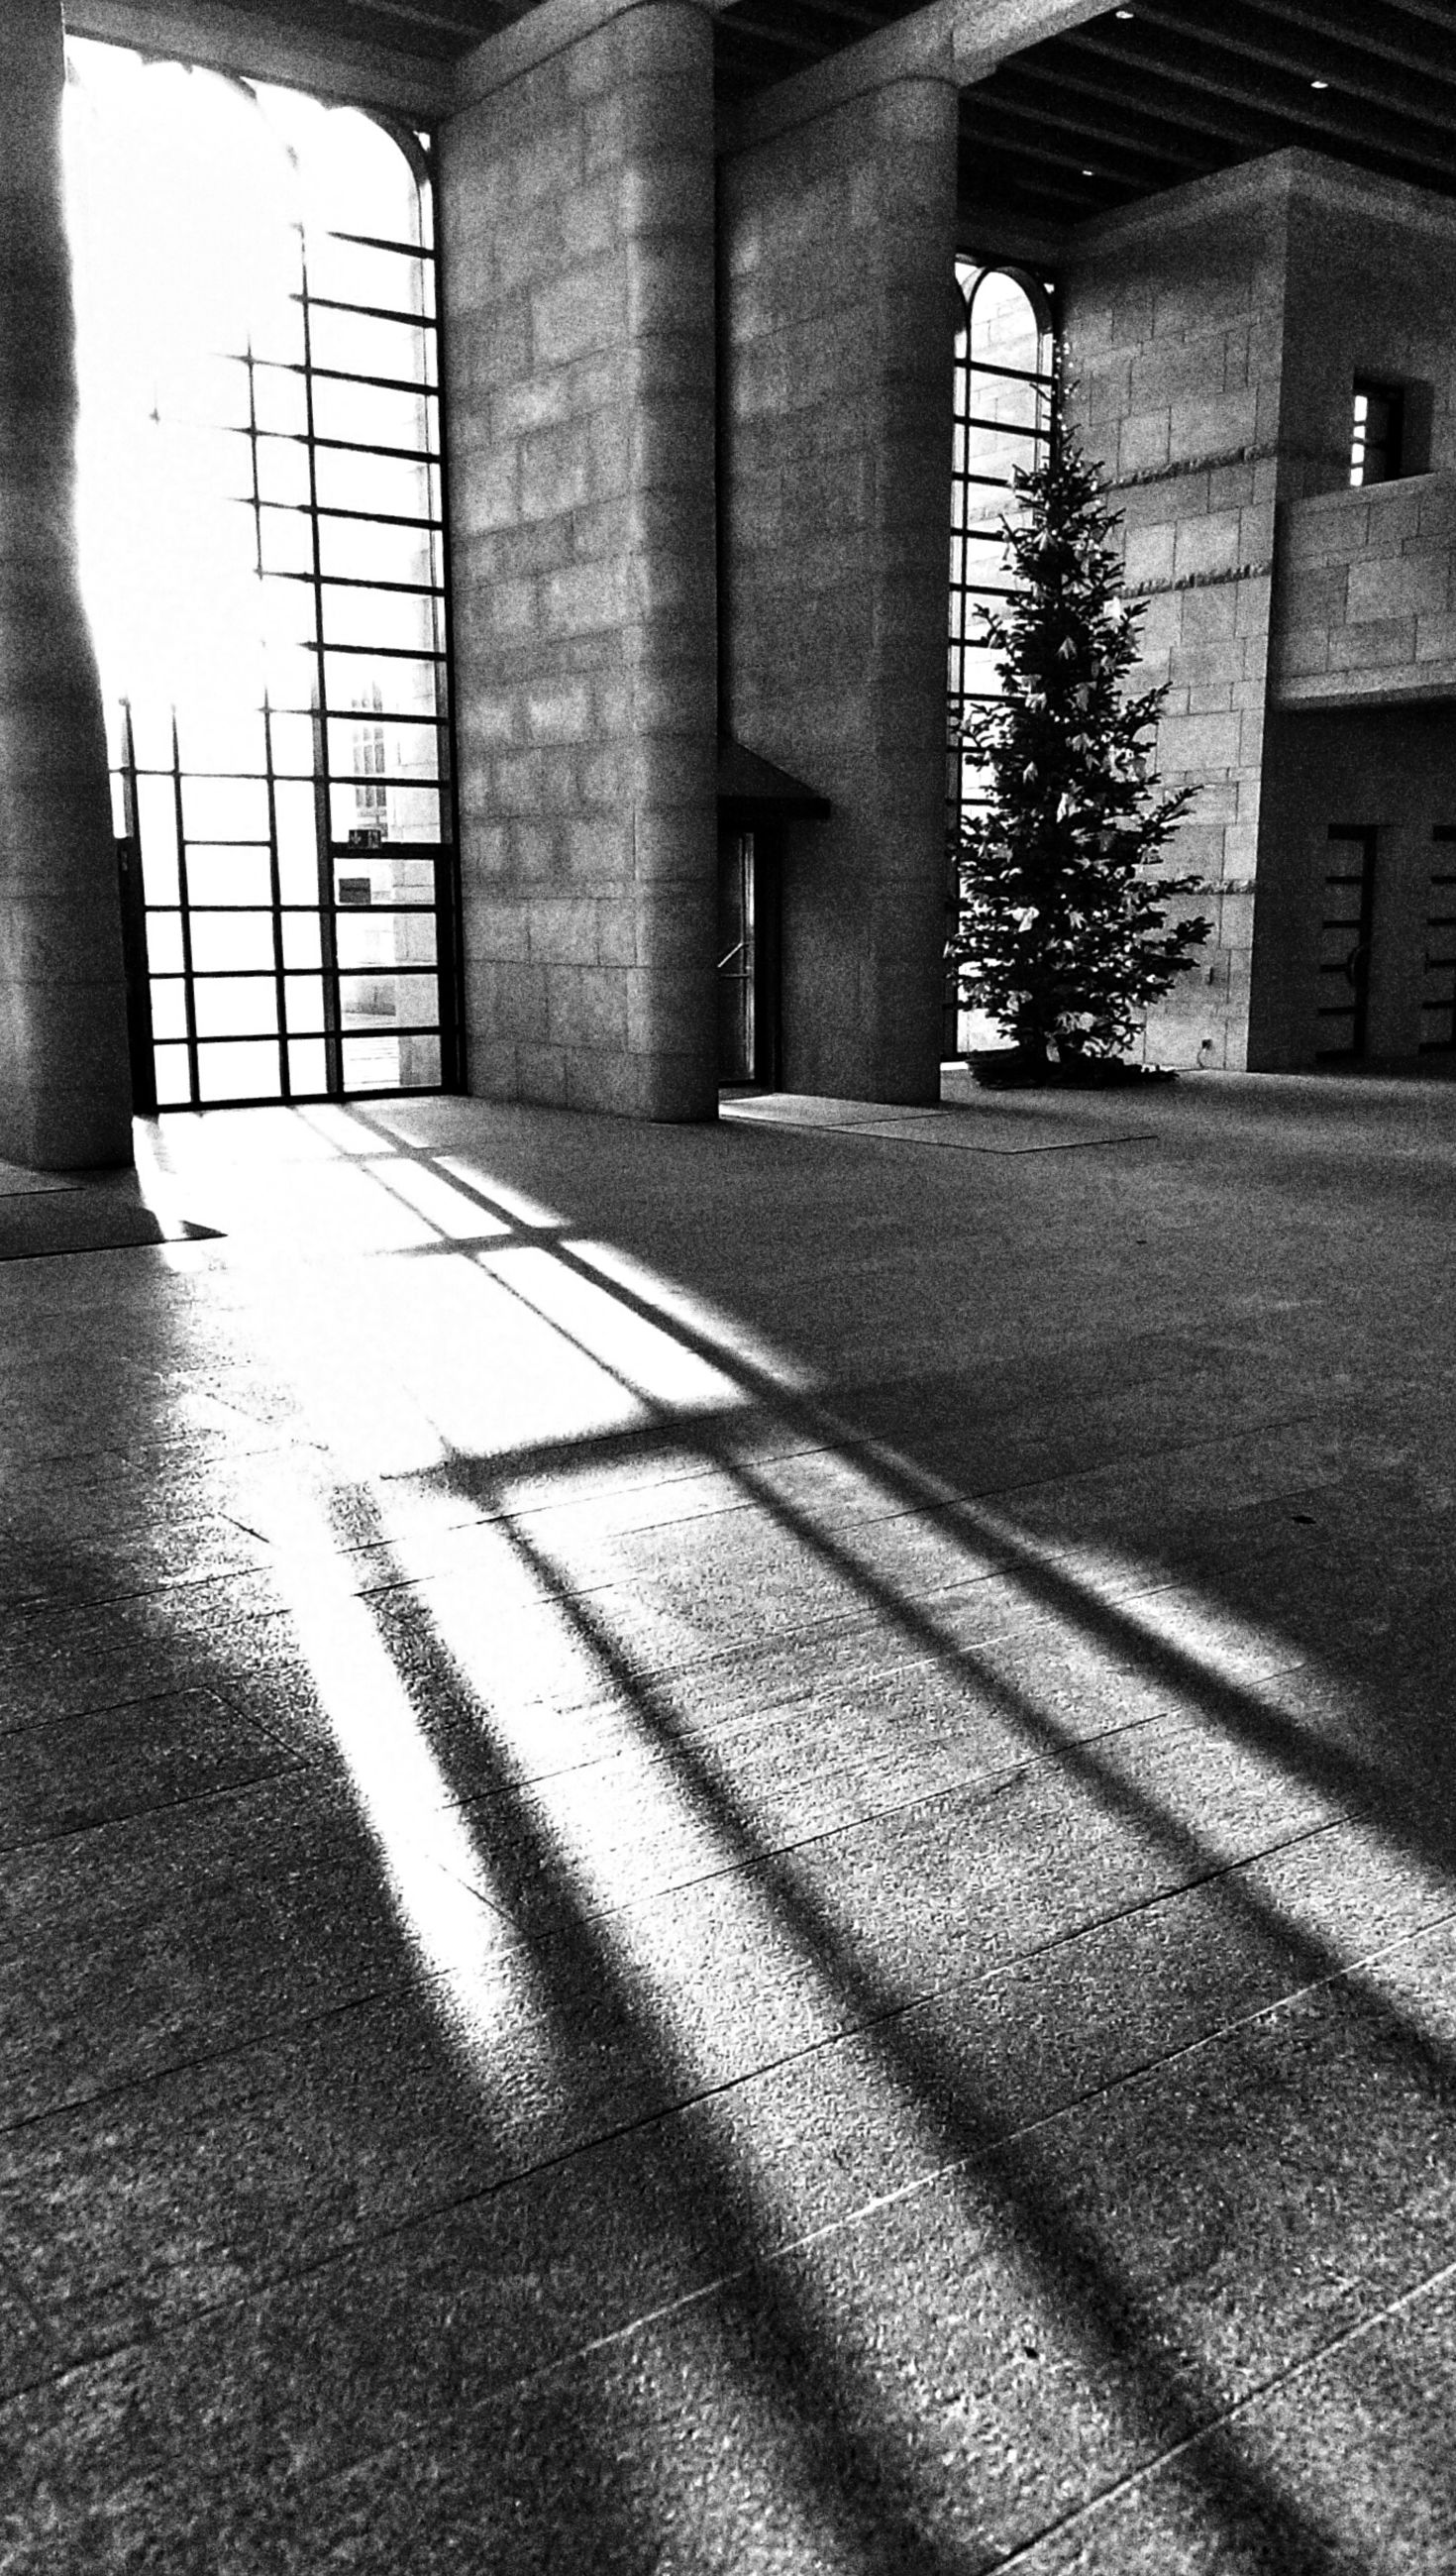 architecture, built structure, building exterior, shadow, sunlight, building, window, street, day, architectural column, city, the way forward, door, wall - building feature, no people, outdoors, cobblestone, walkway, empty, history